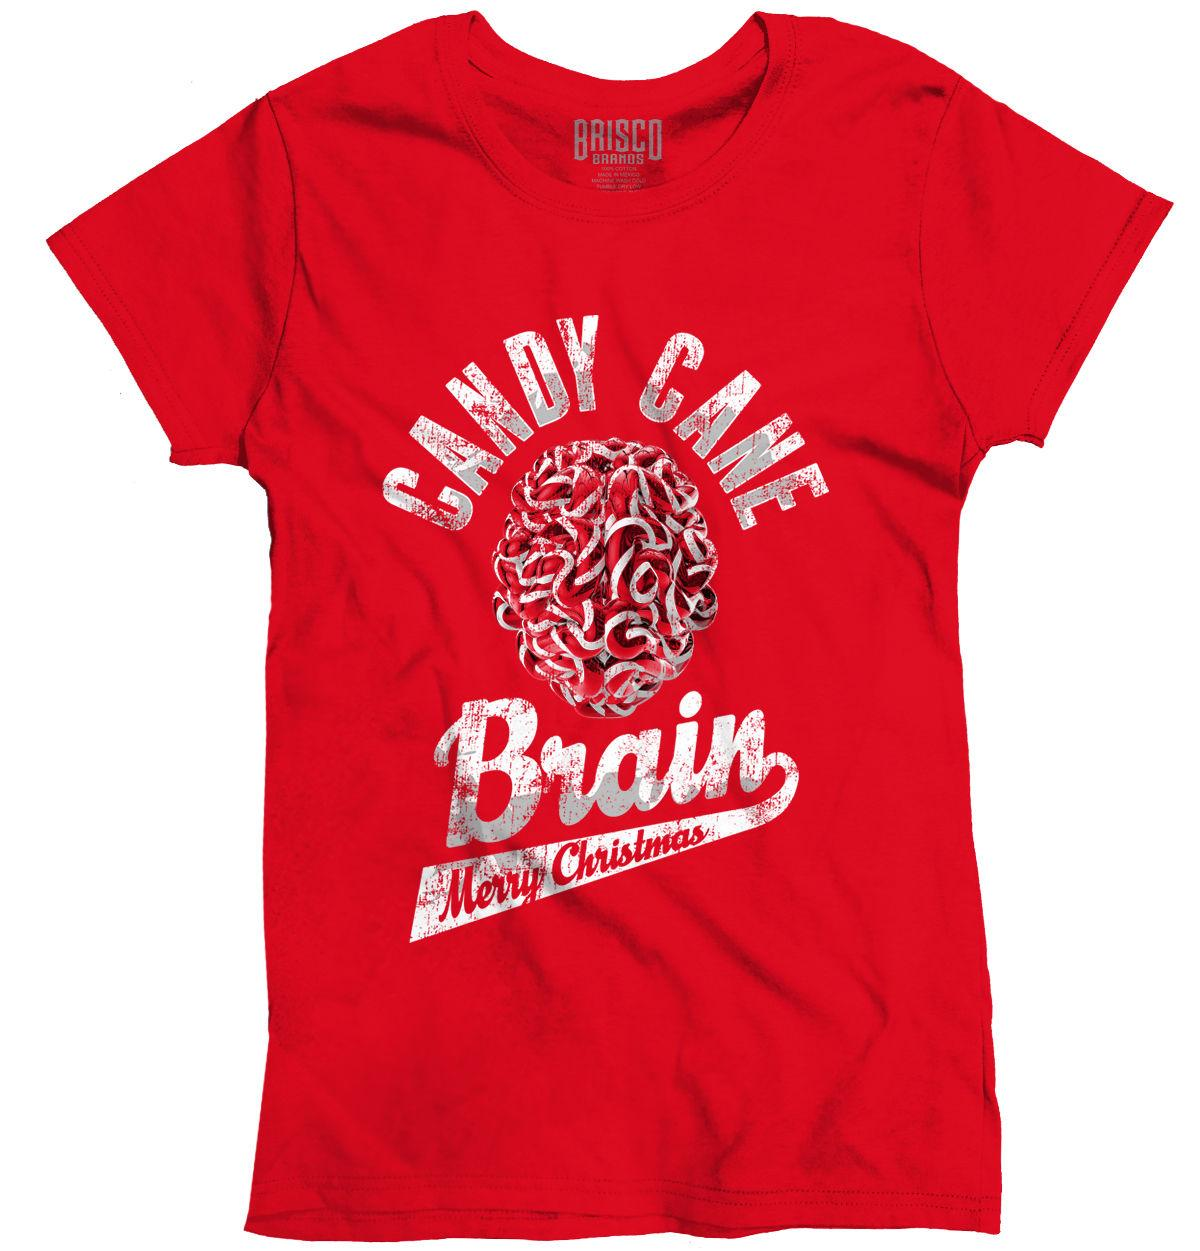 0ea940ccde Women's Tee Candy Cane Brain Trendy Cool Fashion Funny Christmas Gift Idea  Ladies T-shirt Cartoon Brand Clothing For Women Plus Size T Shirt